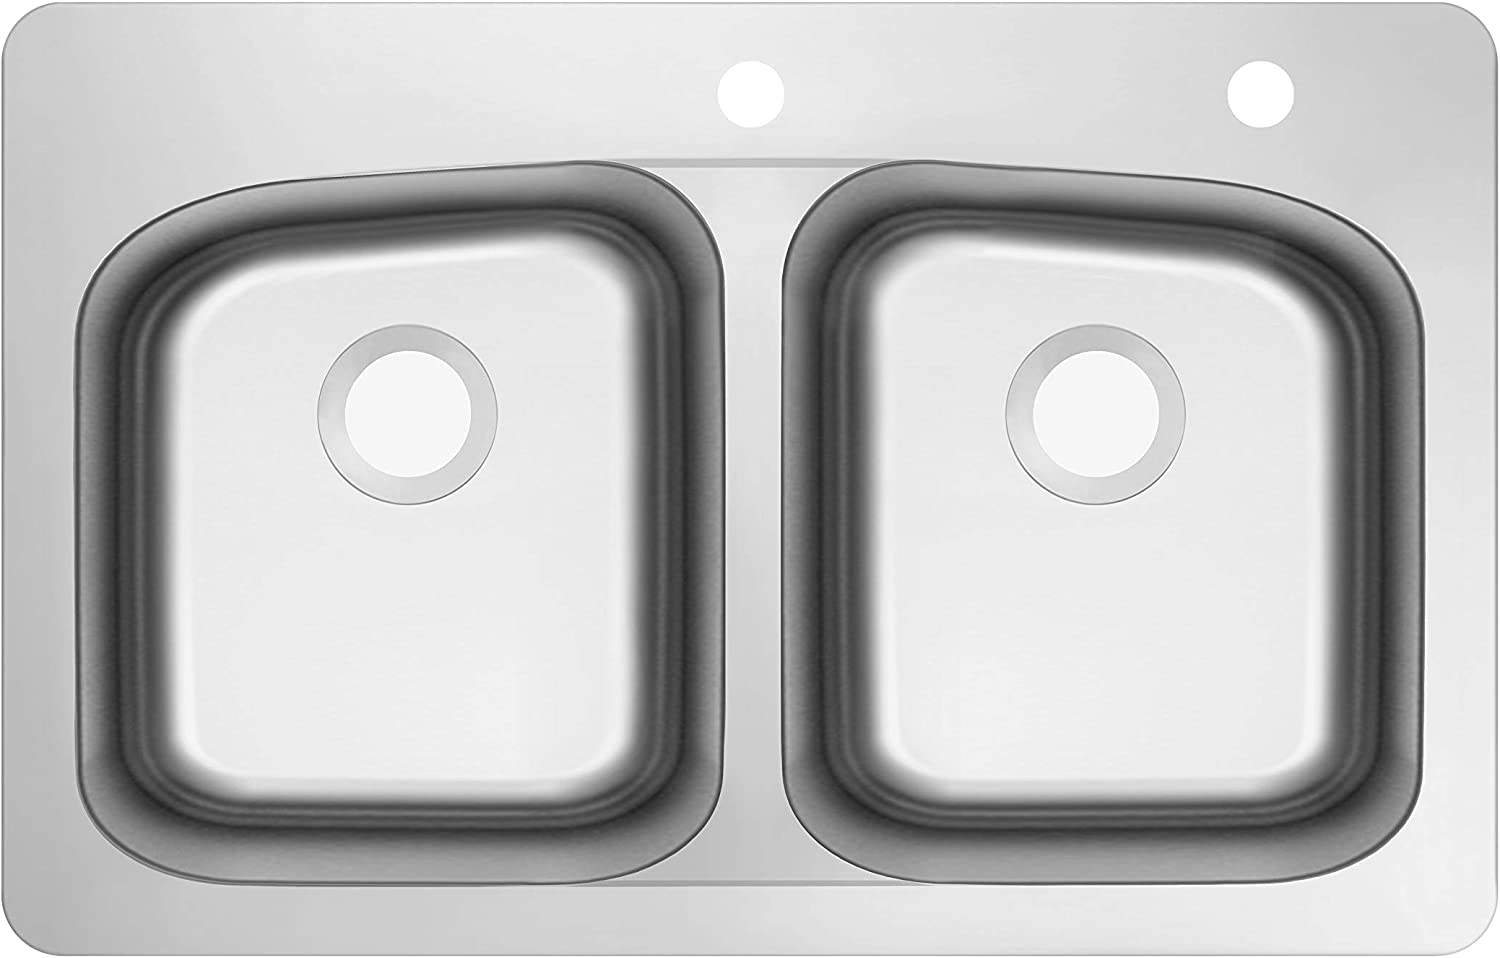 Outlet ☆ Free Shipping Now free shipping Soleil SSDM50-V 33-in x 22-in 18-Gauge Dou 50 Stainless Steel